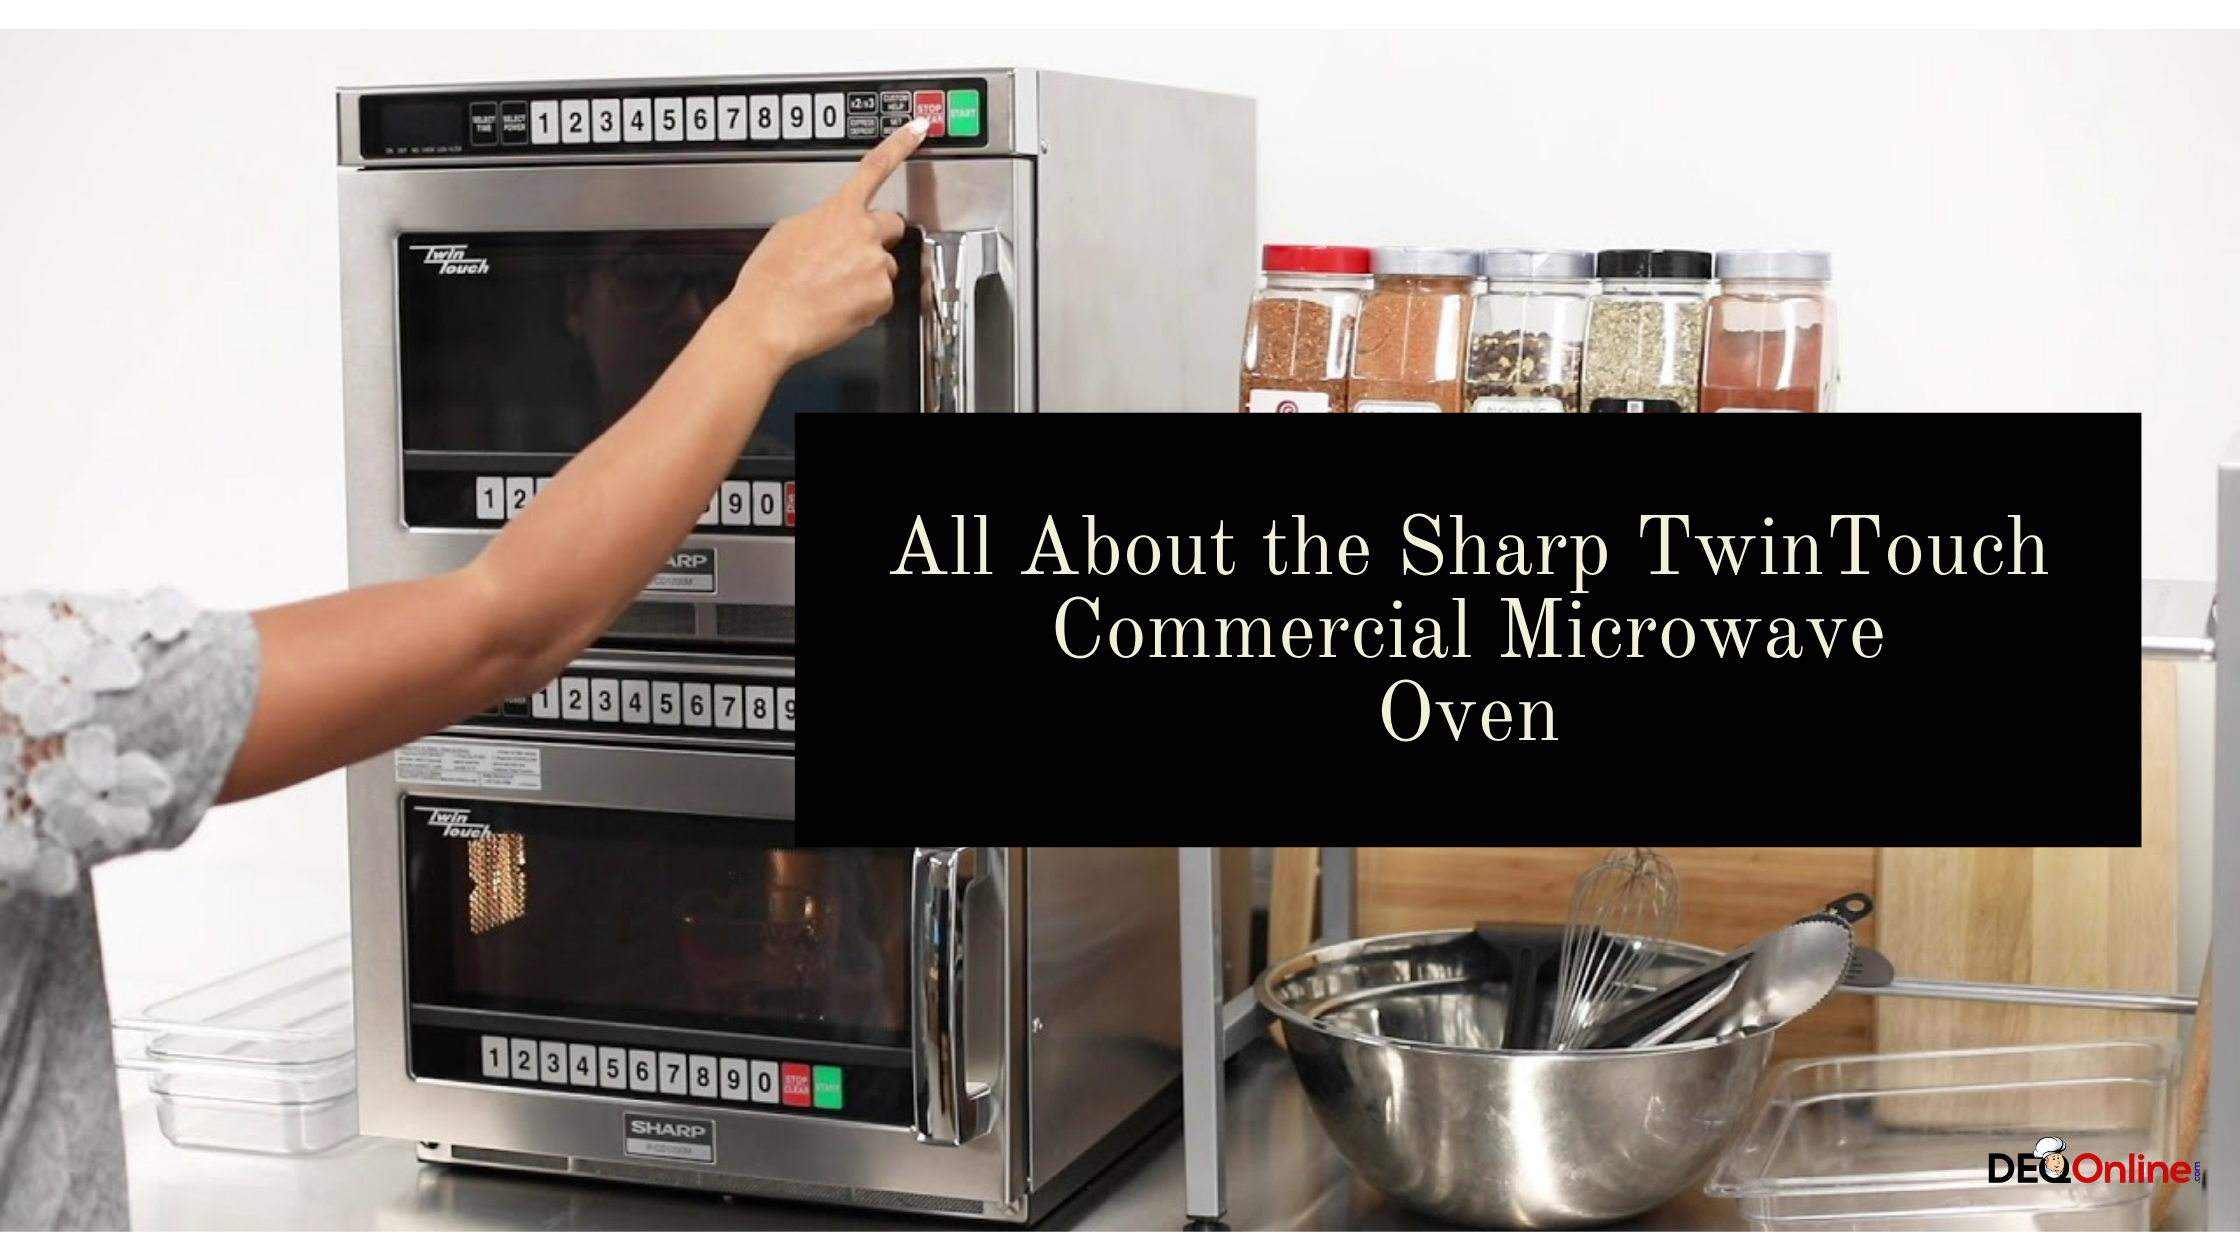 All About the Sharp TwinTouch Commercial Microwave Oven